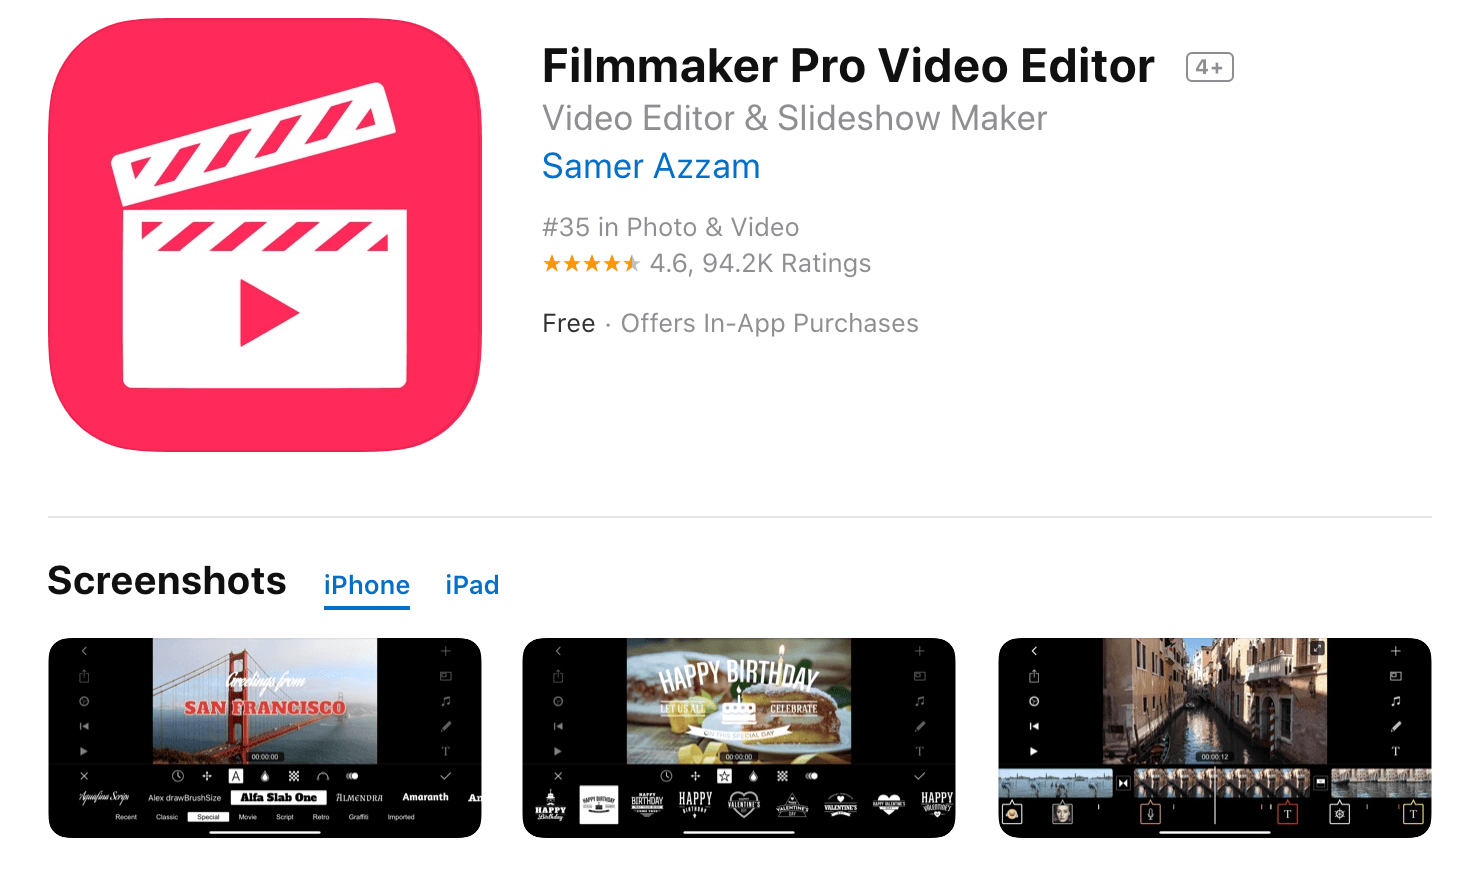 Filmmaker Pro Mobile Video Editor